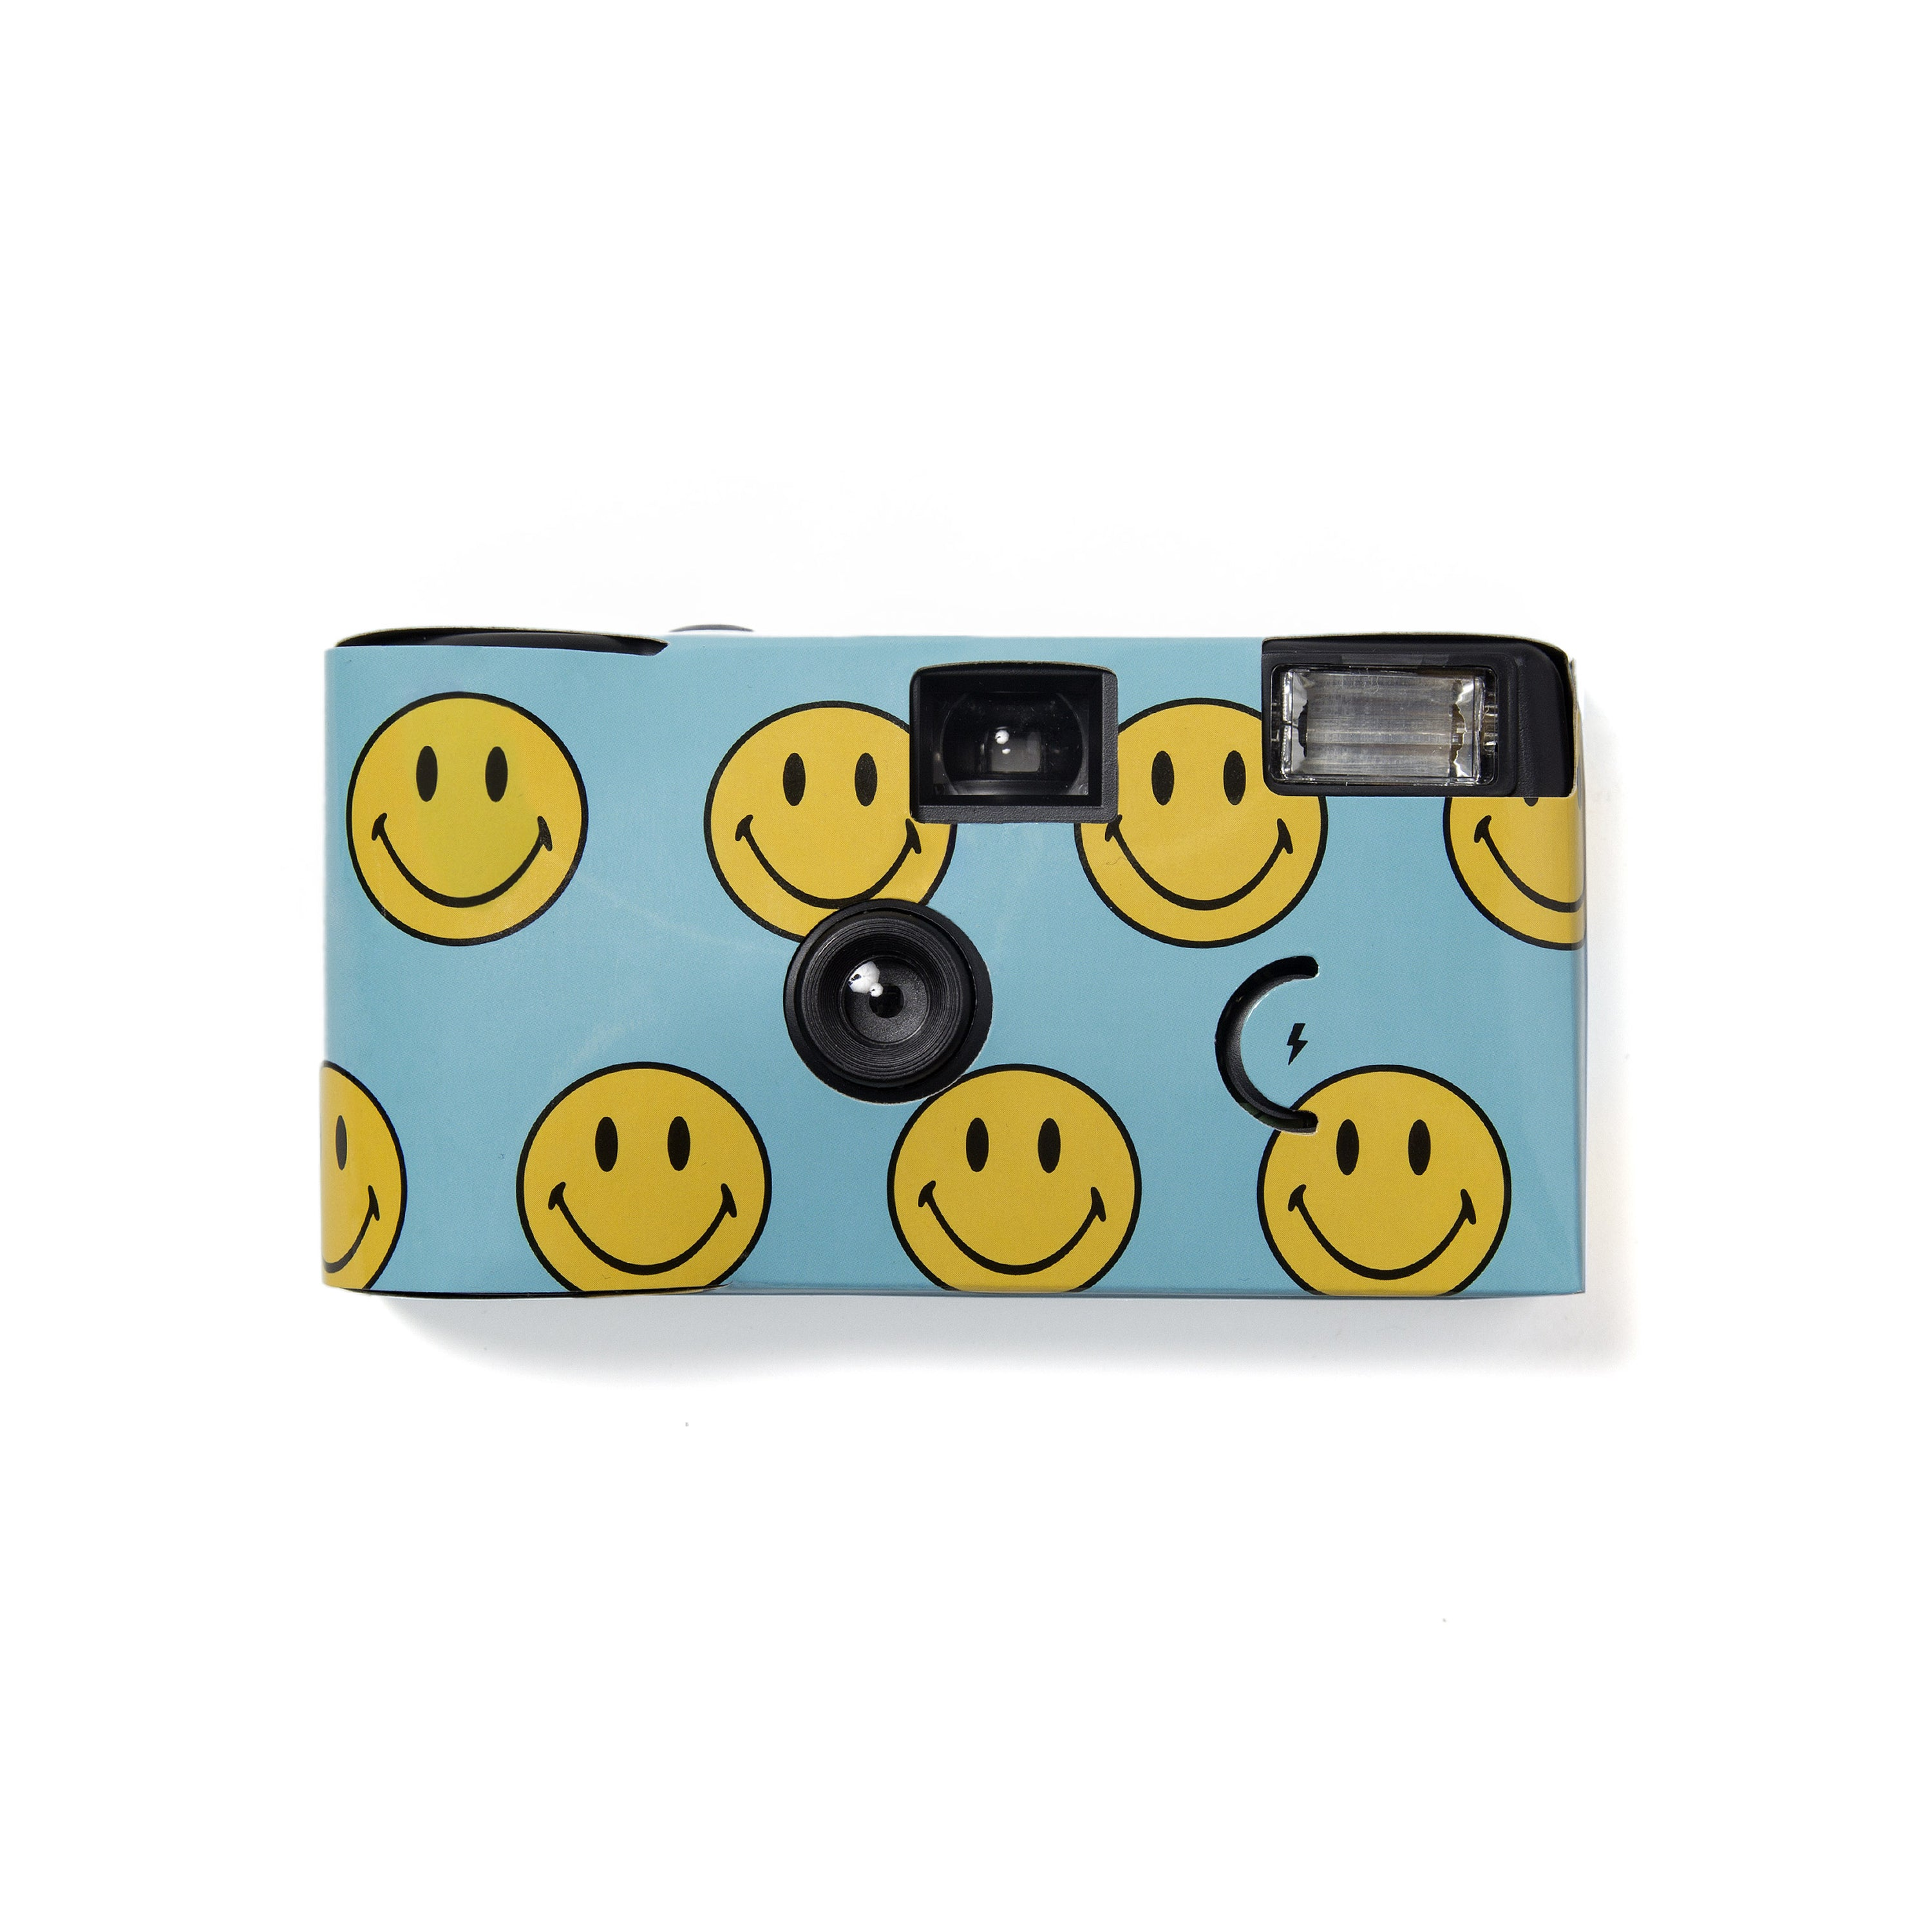 SMILEY DISPOSABLE CAMERA (BLUE)